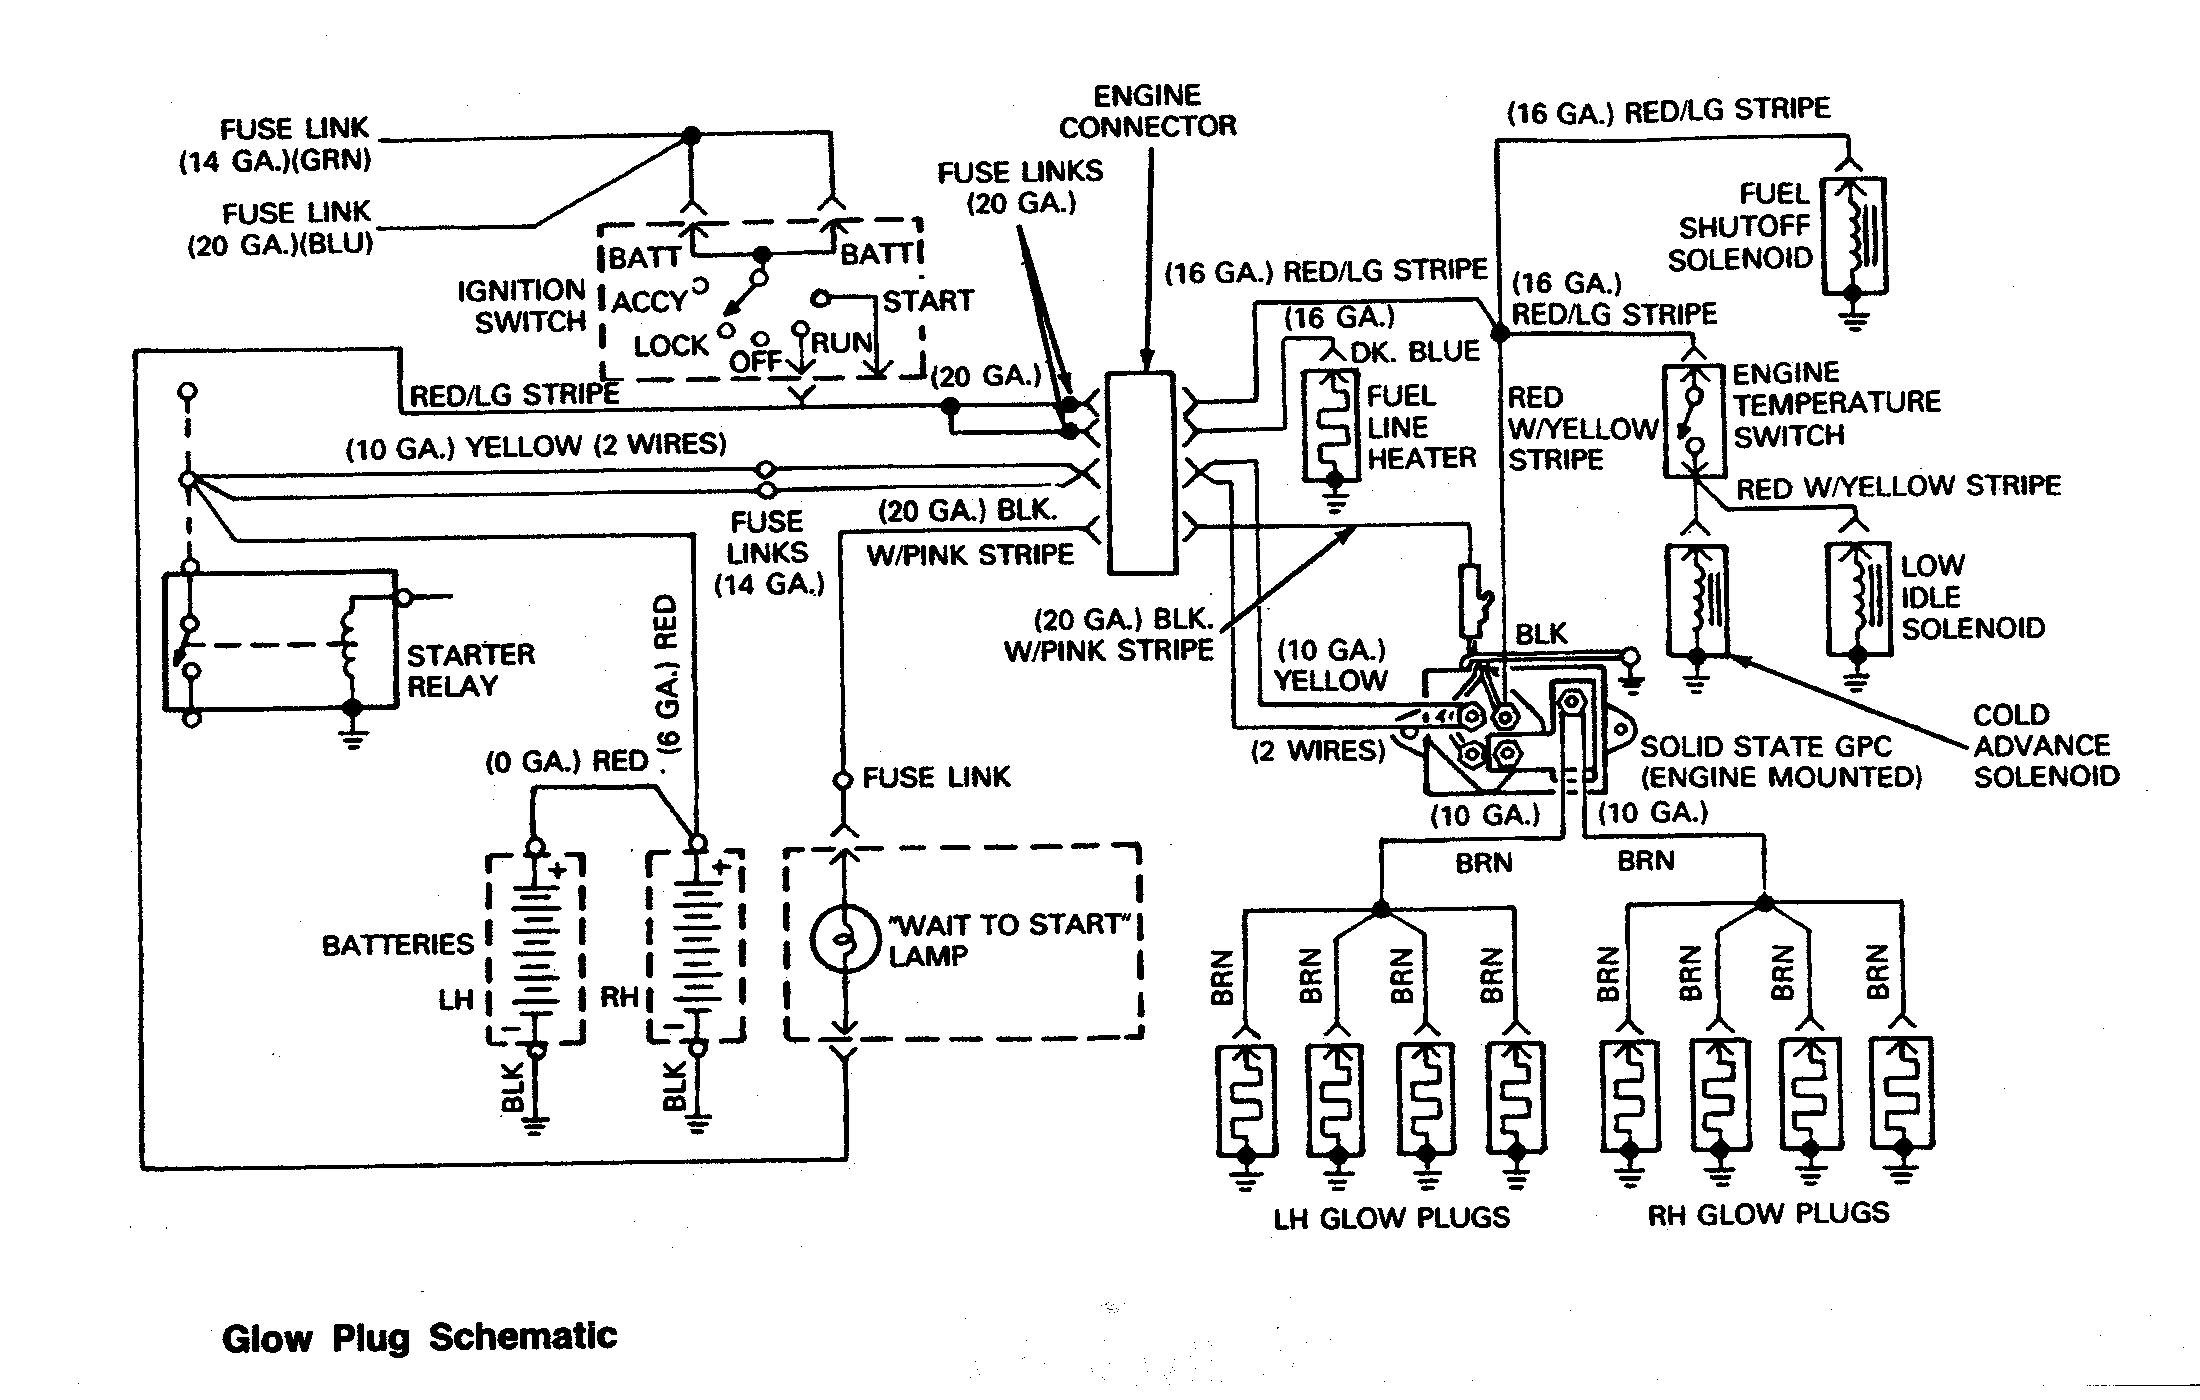 W Engine Diagram Glow Engine Diagram Experts Wiring Diagram • Of W Engine Diagram